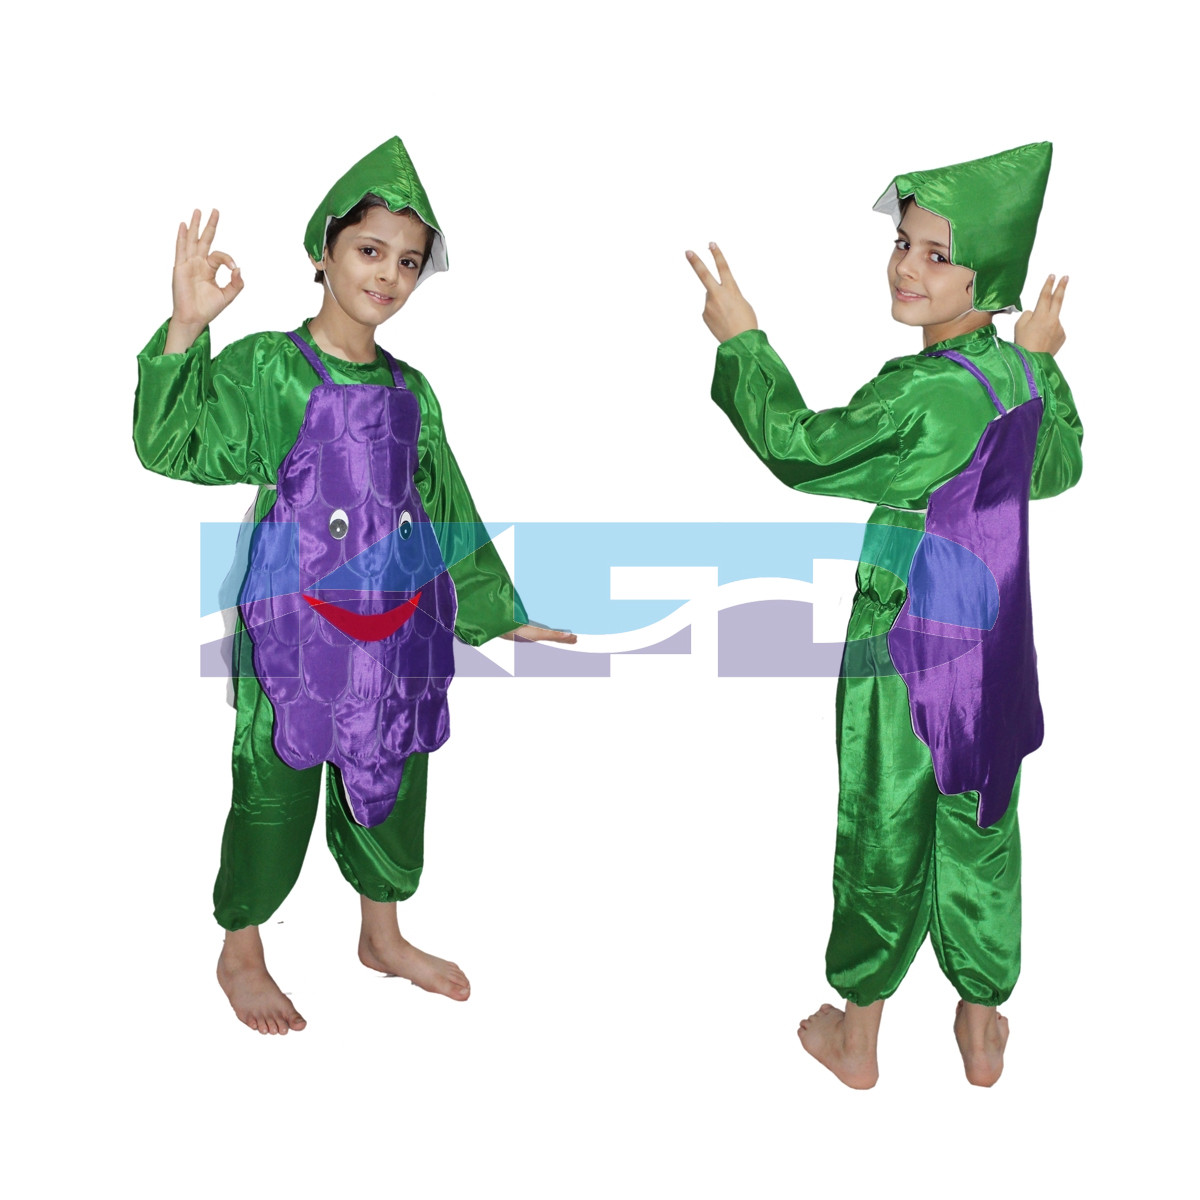 Grapes fancy dress for kids,Fruits Costume for School Annual function/Theme Party/Competition/Stage Shows Dress